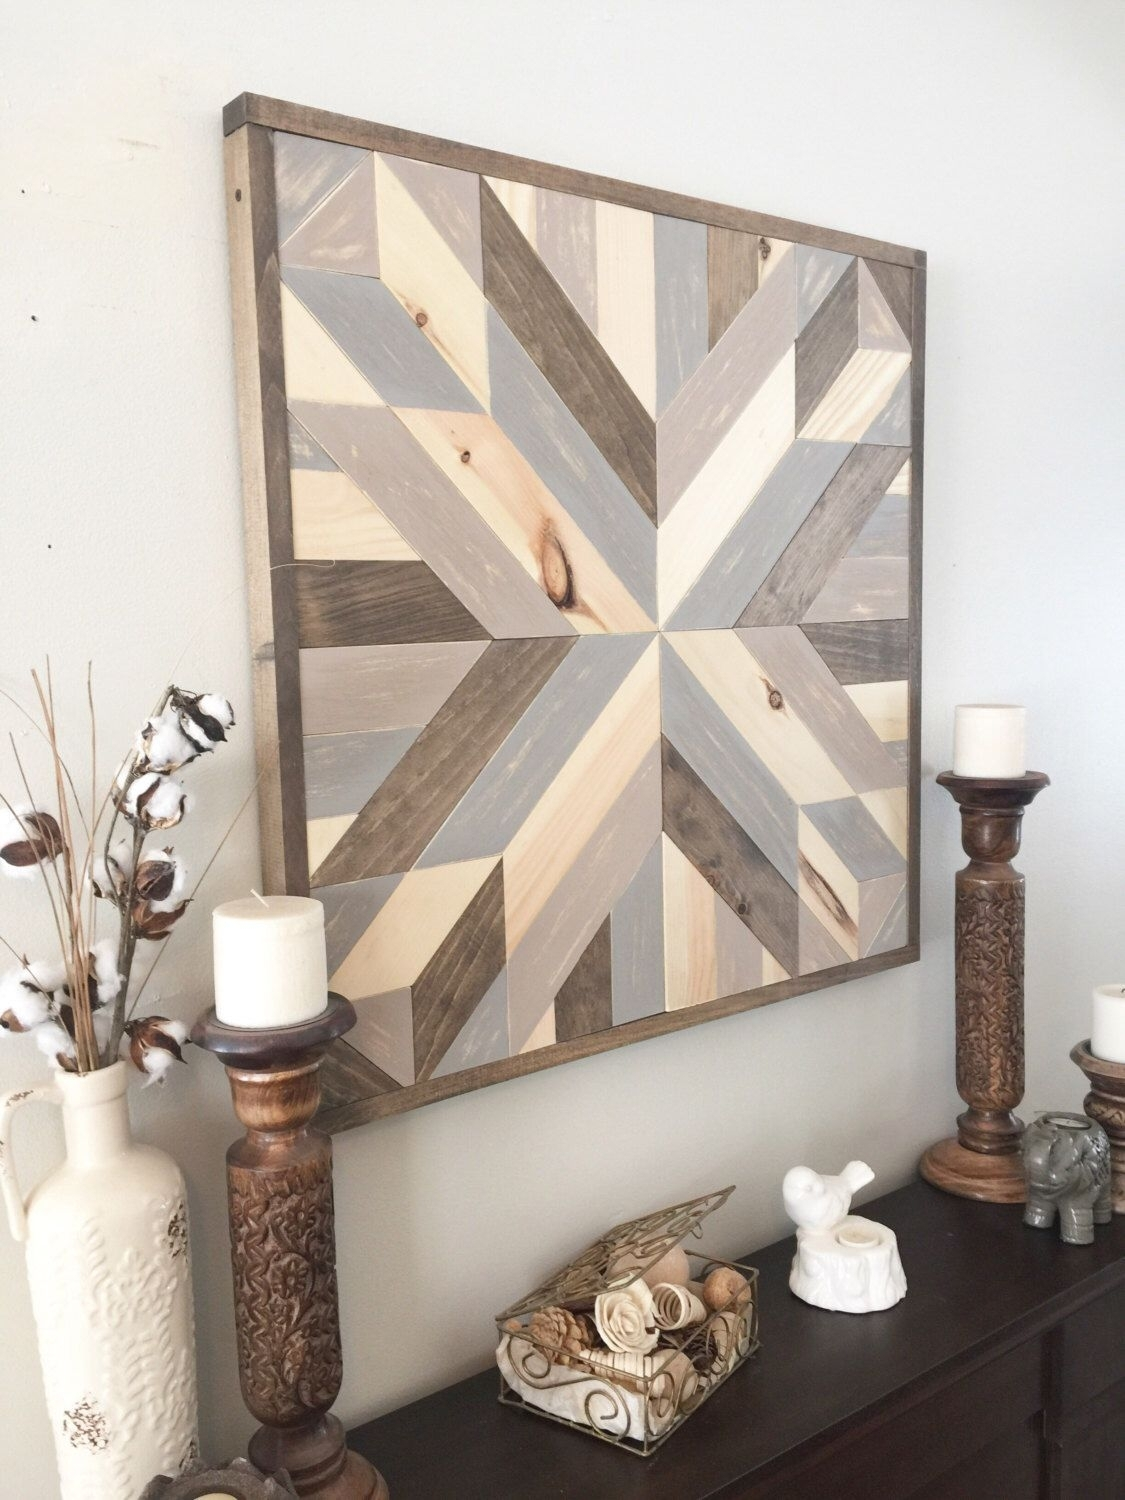 Wood Wall Art, Geometric Art, Boho Decor, Aztec Decor, Farmhouse Within Current Rustic Wall Art (View 13 of 15)